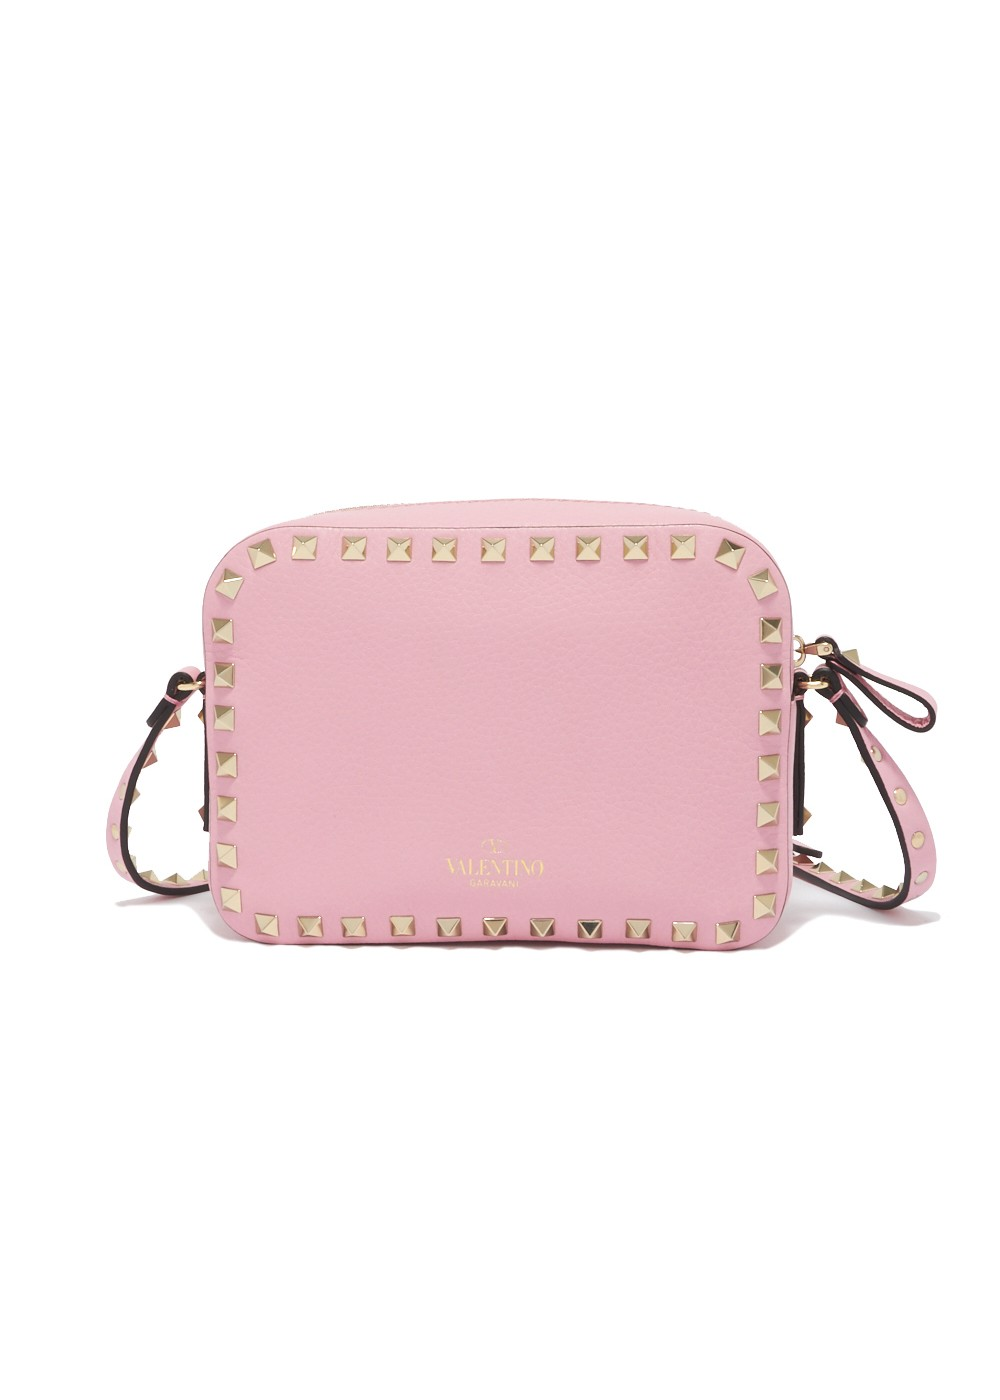 【最大32%OFF】ROCKSTUD EMBOSSED CROSS BODY BAG|ABSOLUTE ROSE|ショルダーバッグ|VALENTINO_(TI)